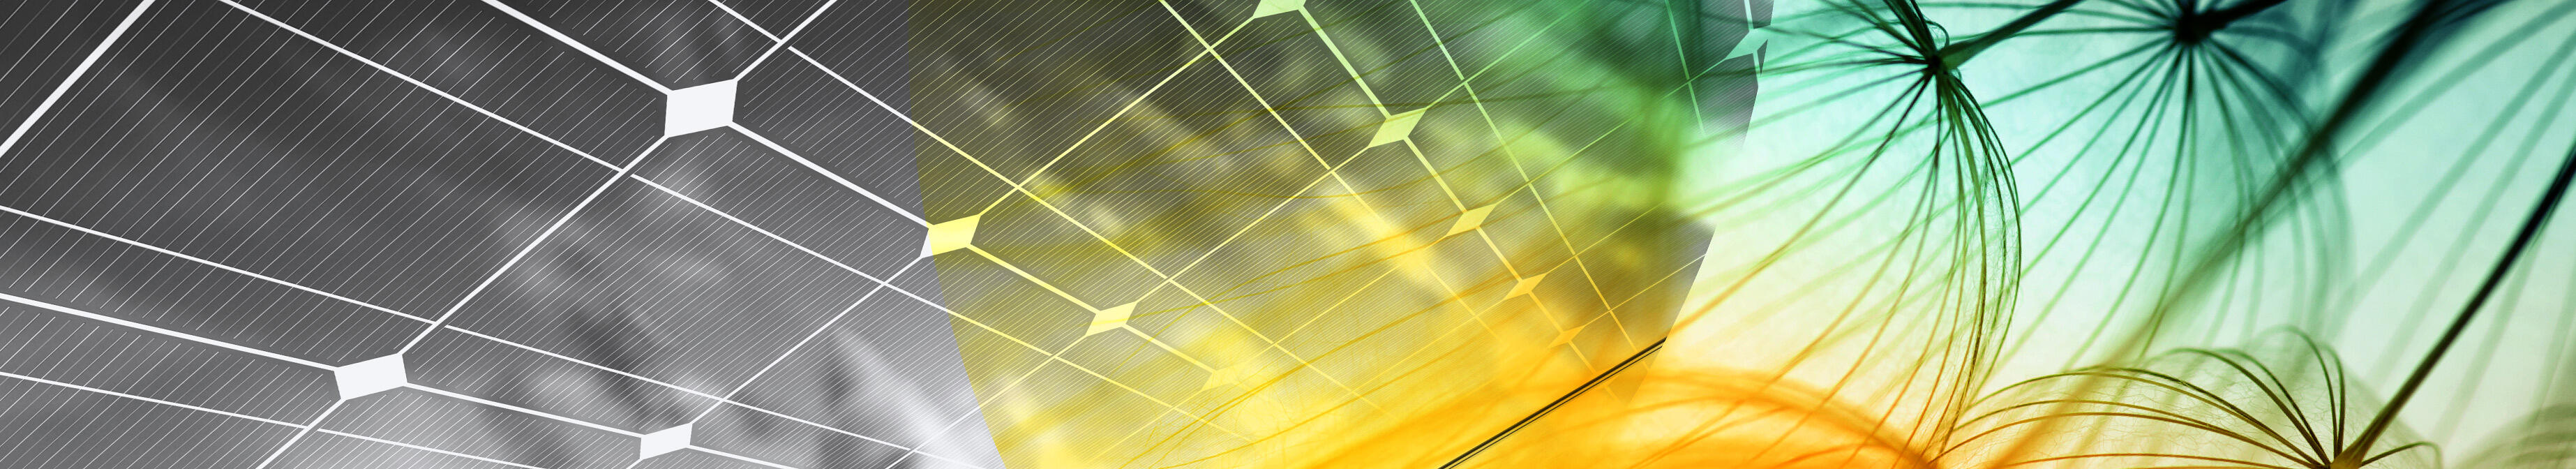 Image of solar panels overlaid with plants